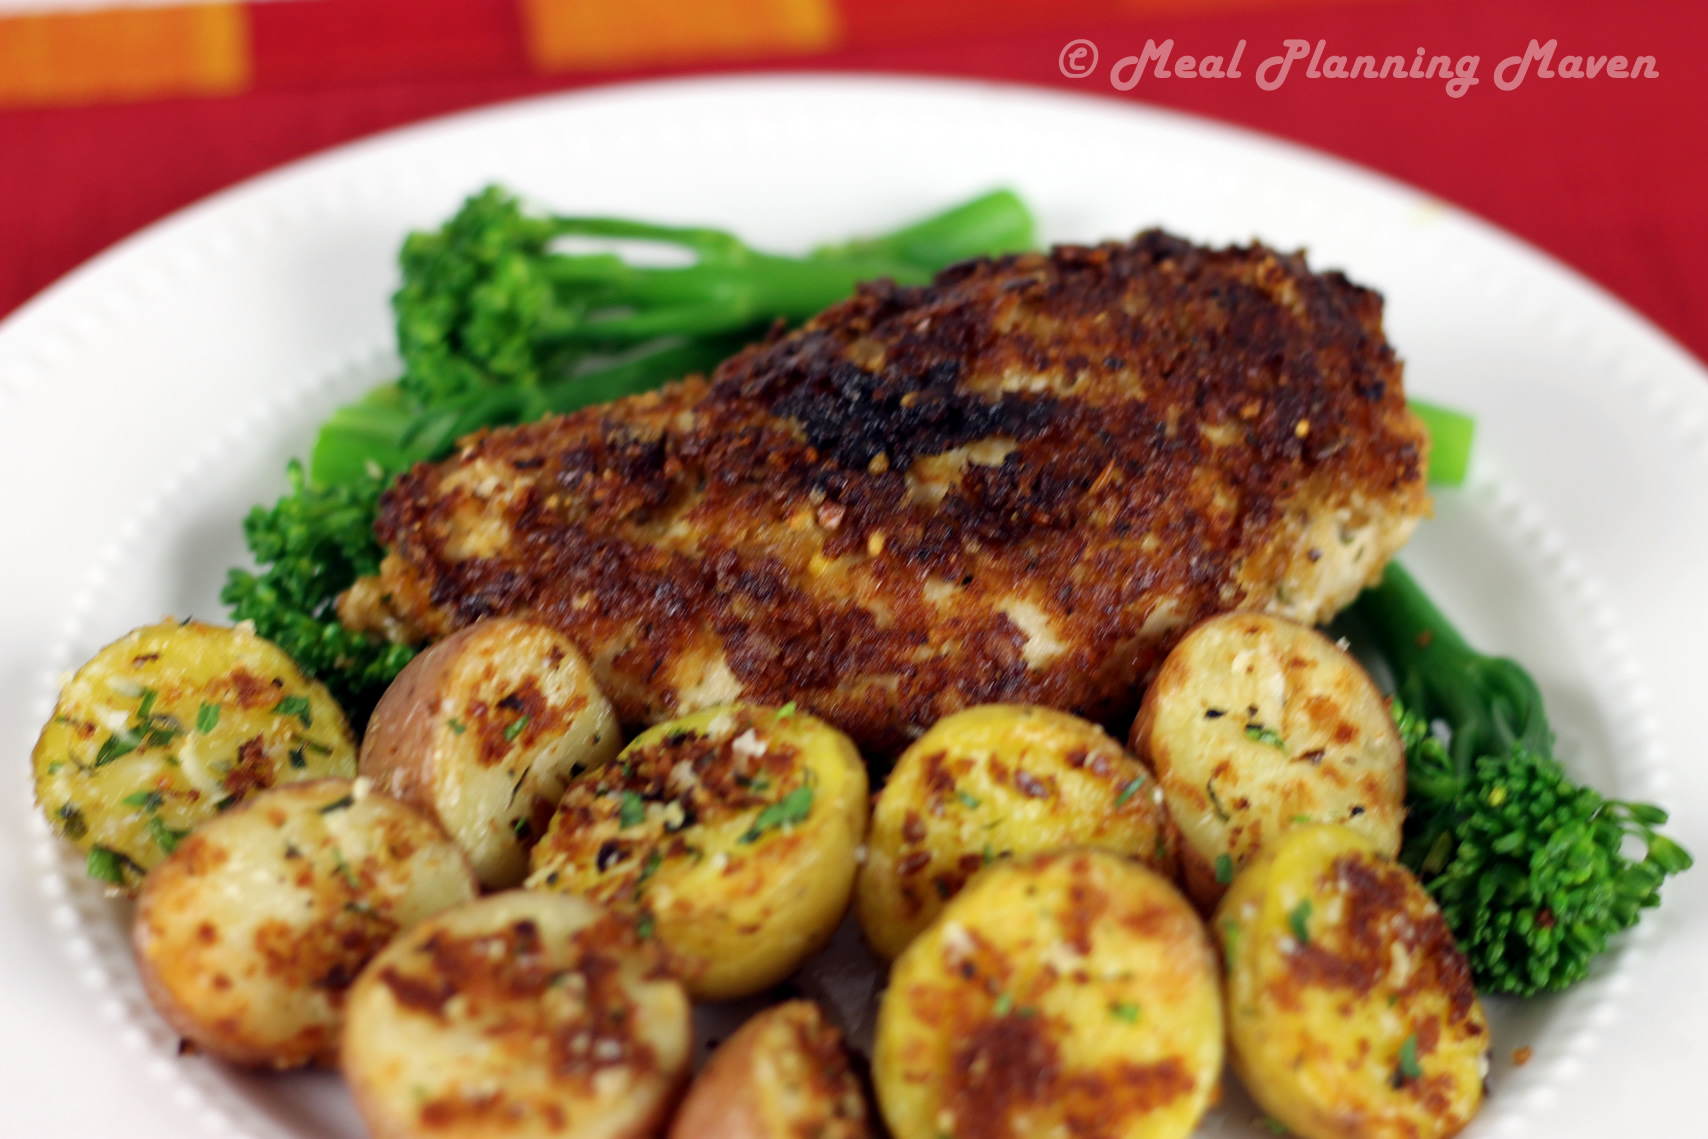 Almond Parmesan Oven-Fried Chicken